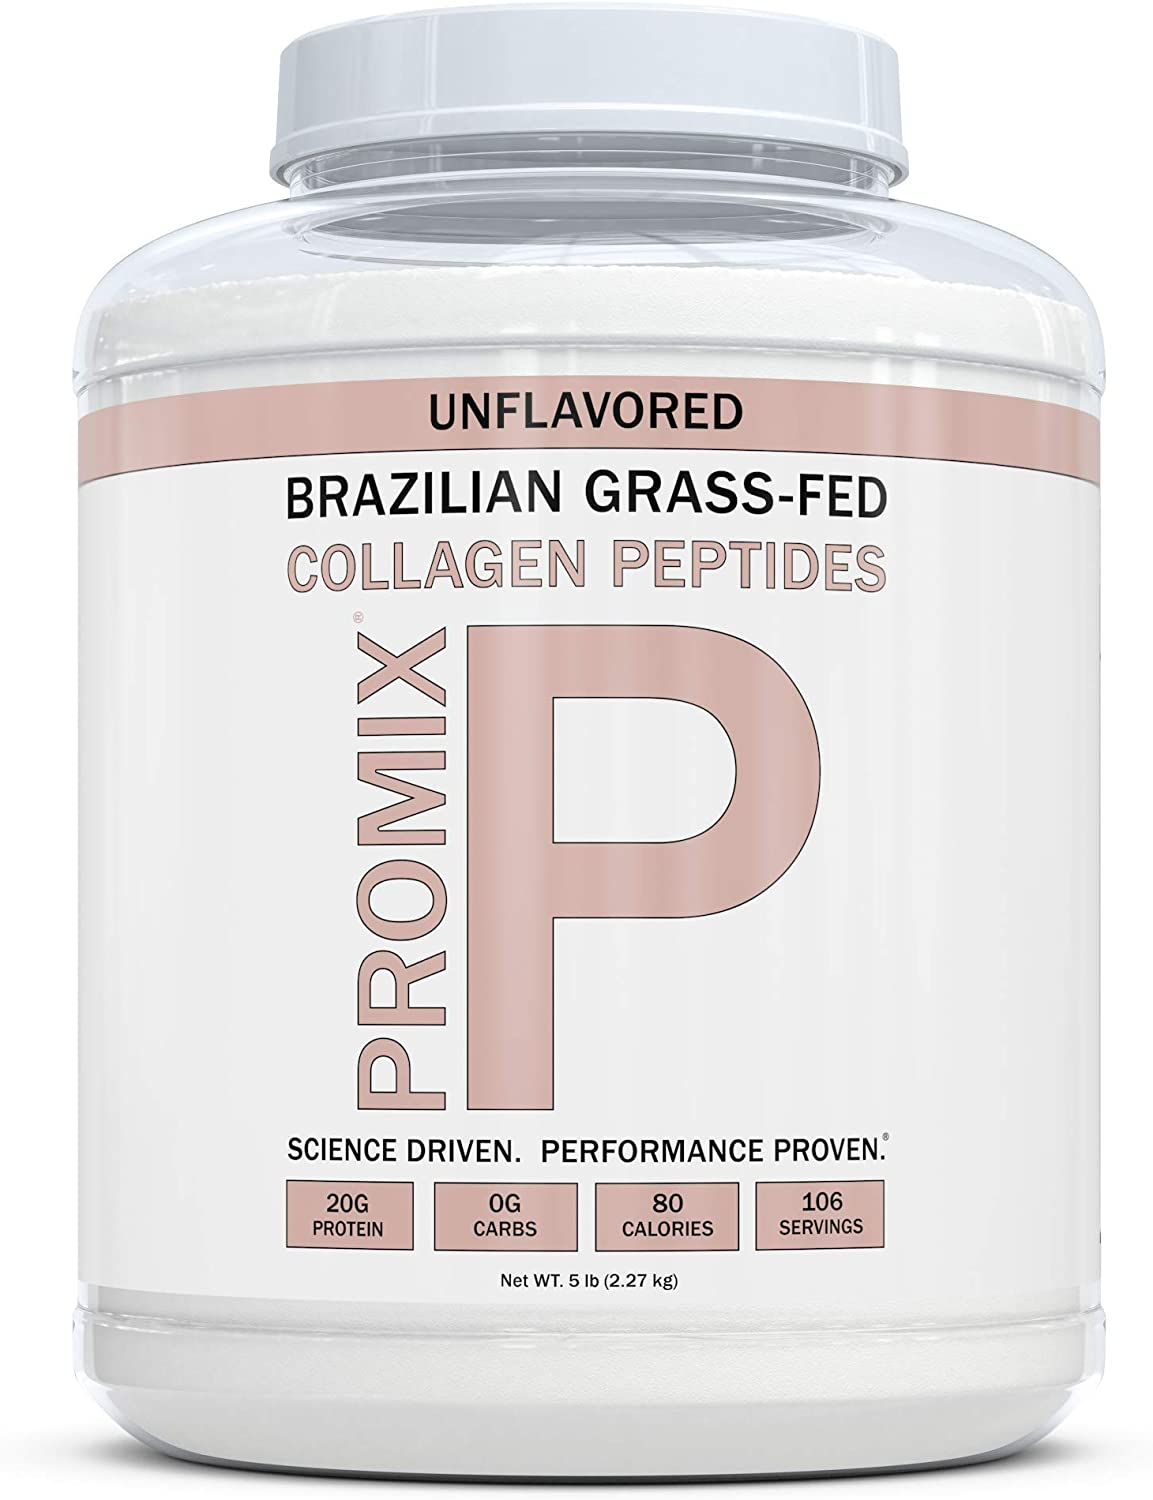 Collagen Peptides Joint Health Supplement: Unflavored Drink Mix Powder - Structure & Function Booster - Supplements Protein Production for Strong Healthy Bones (Unflavored, 5 LB)